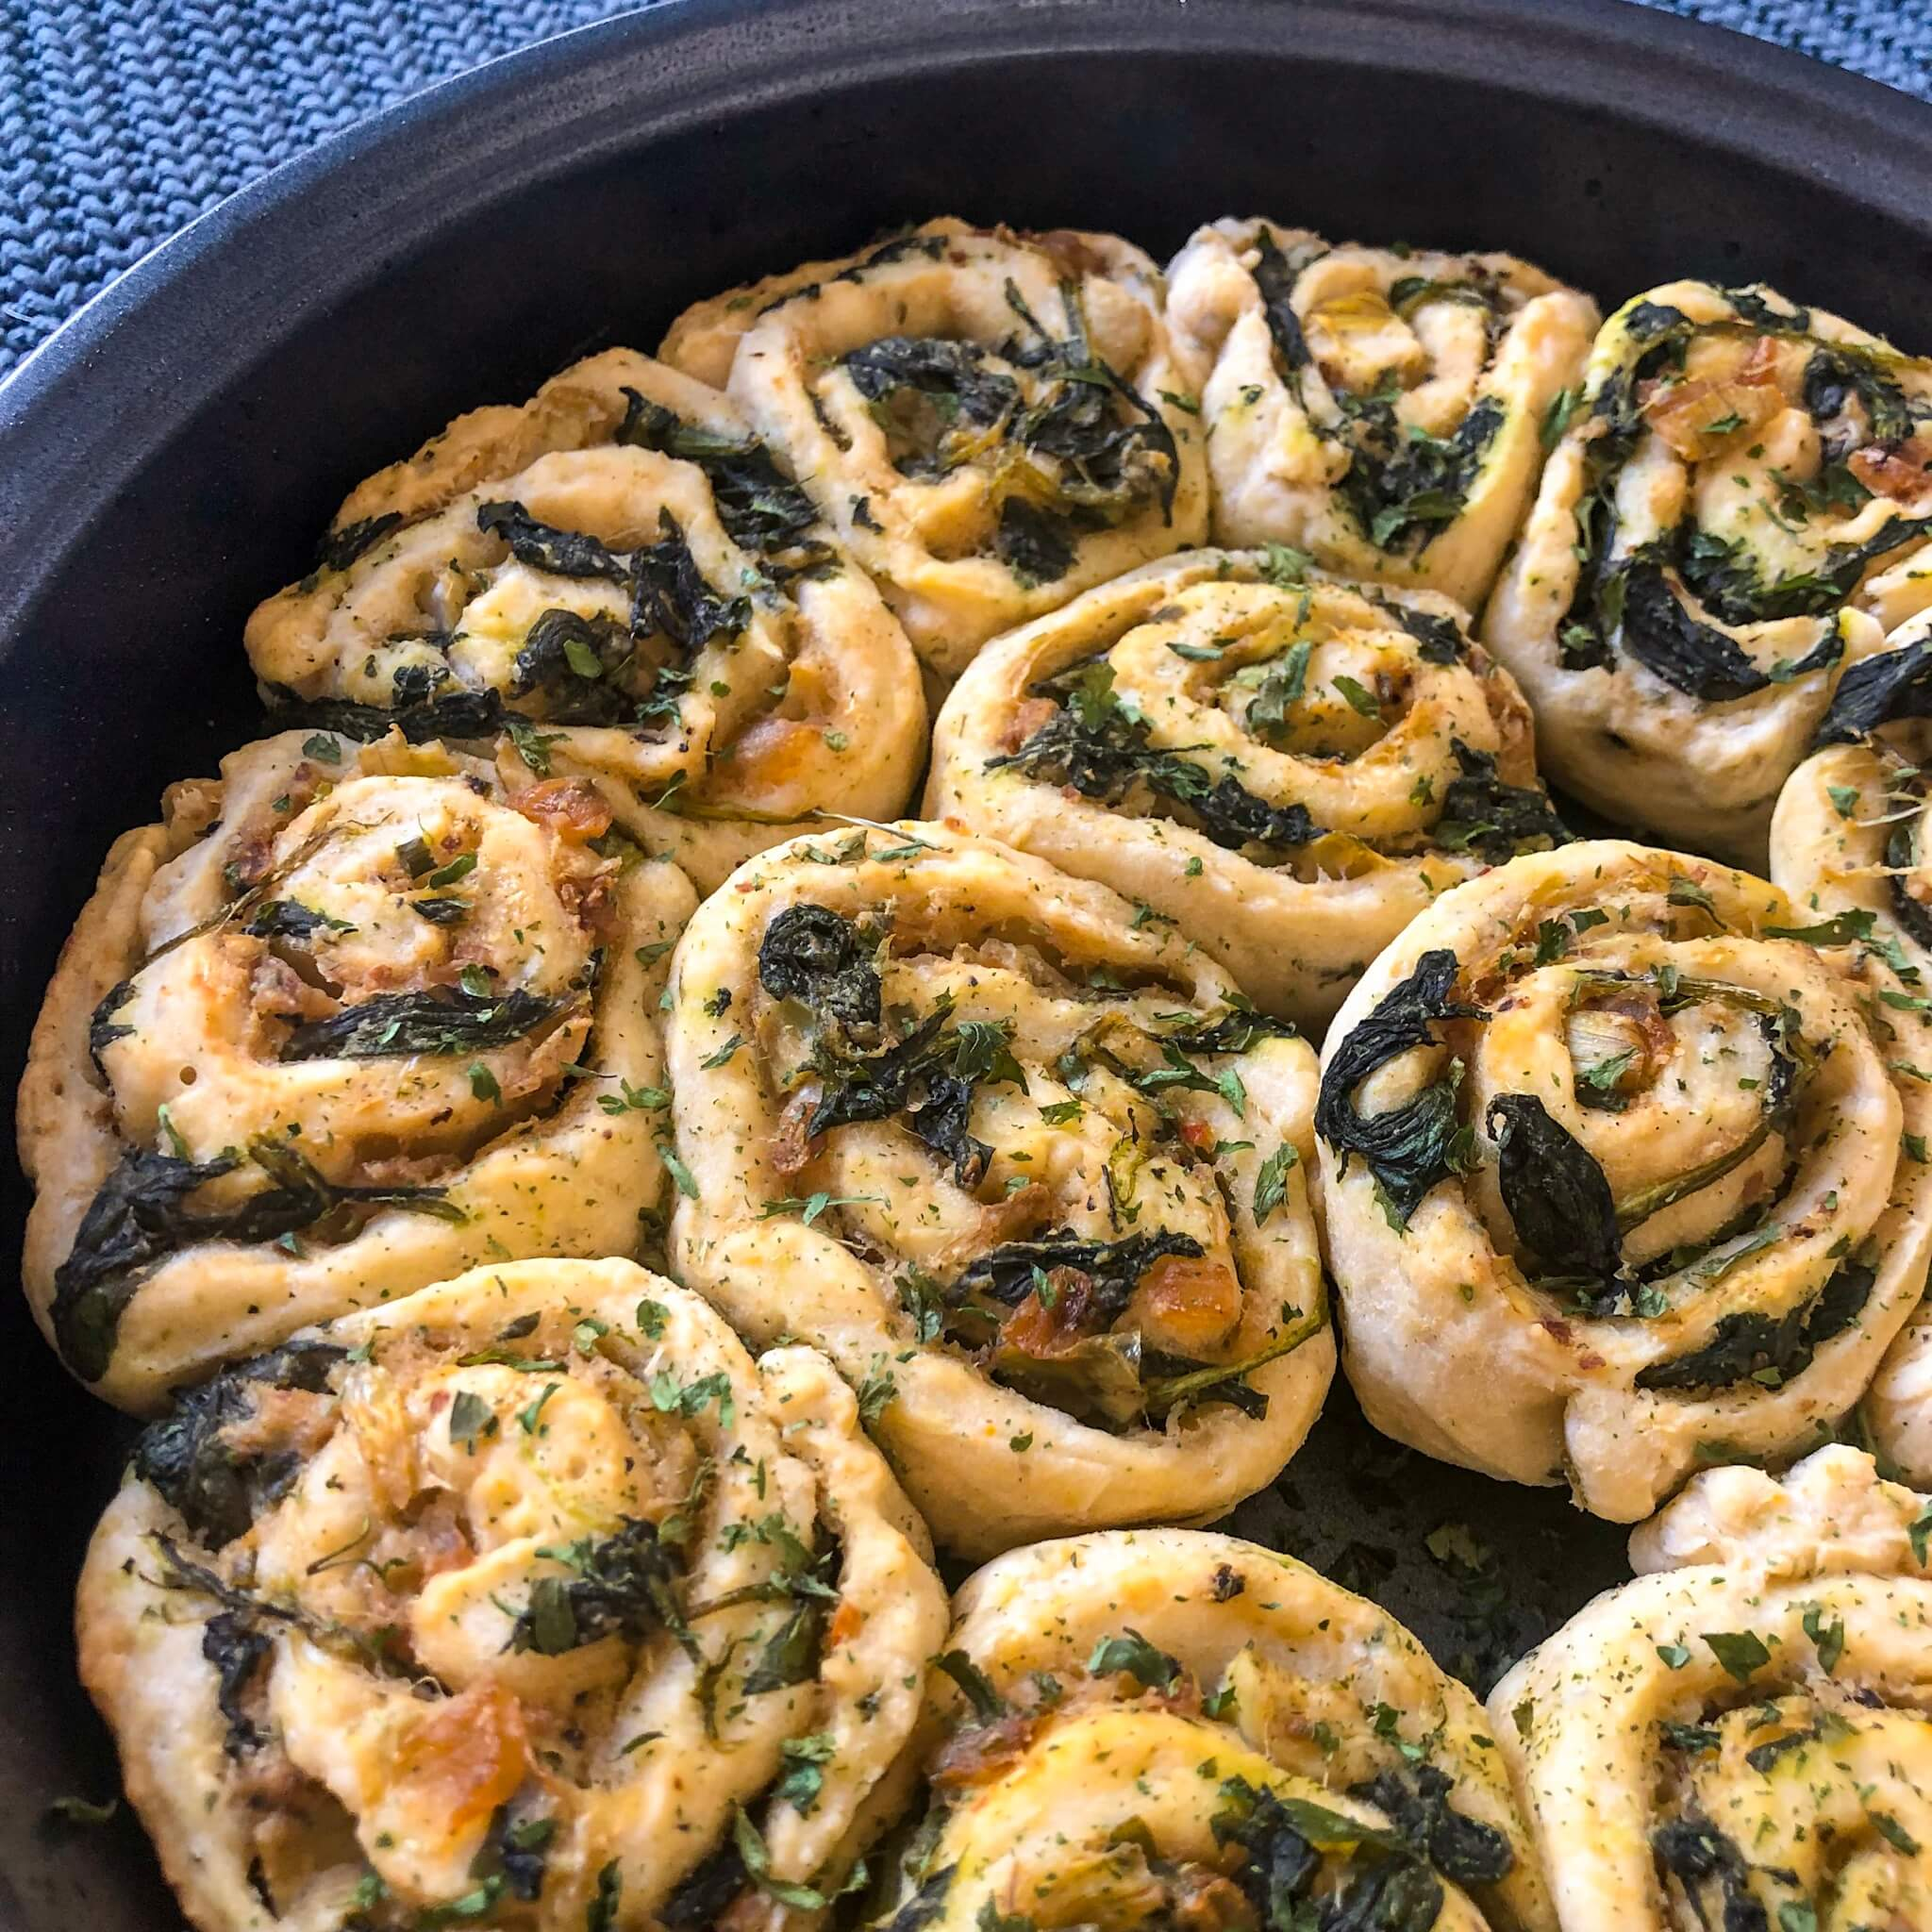 spinach and artichoke rolls cooked up close